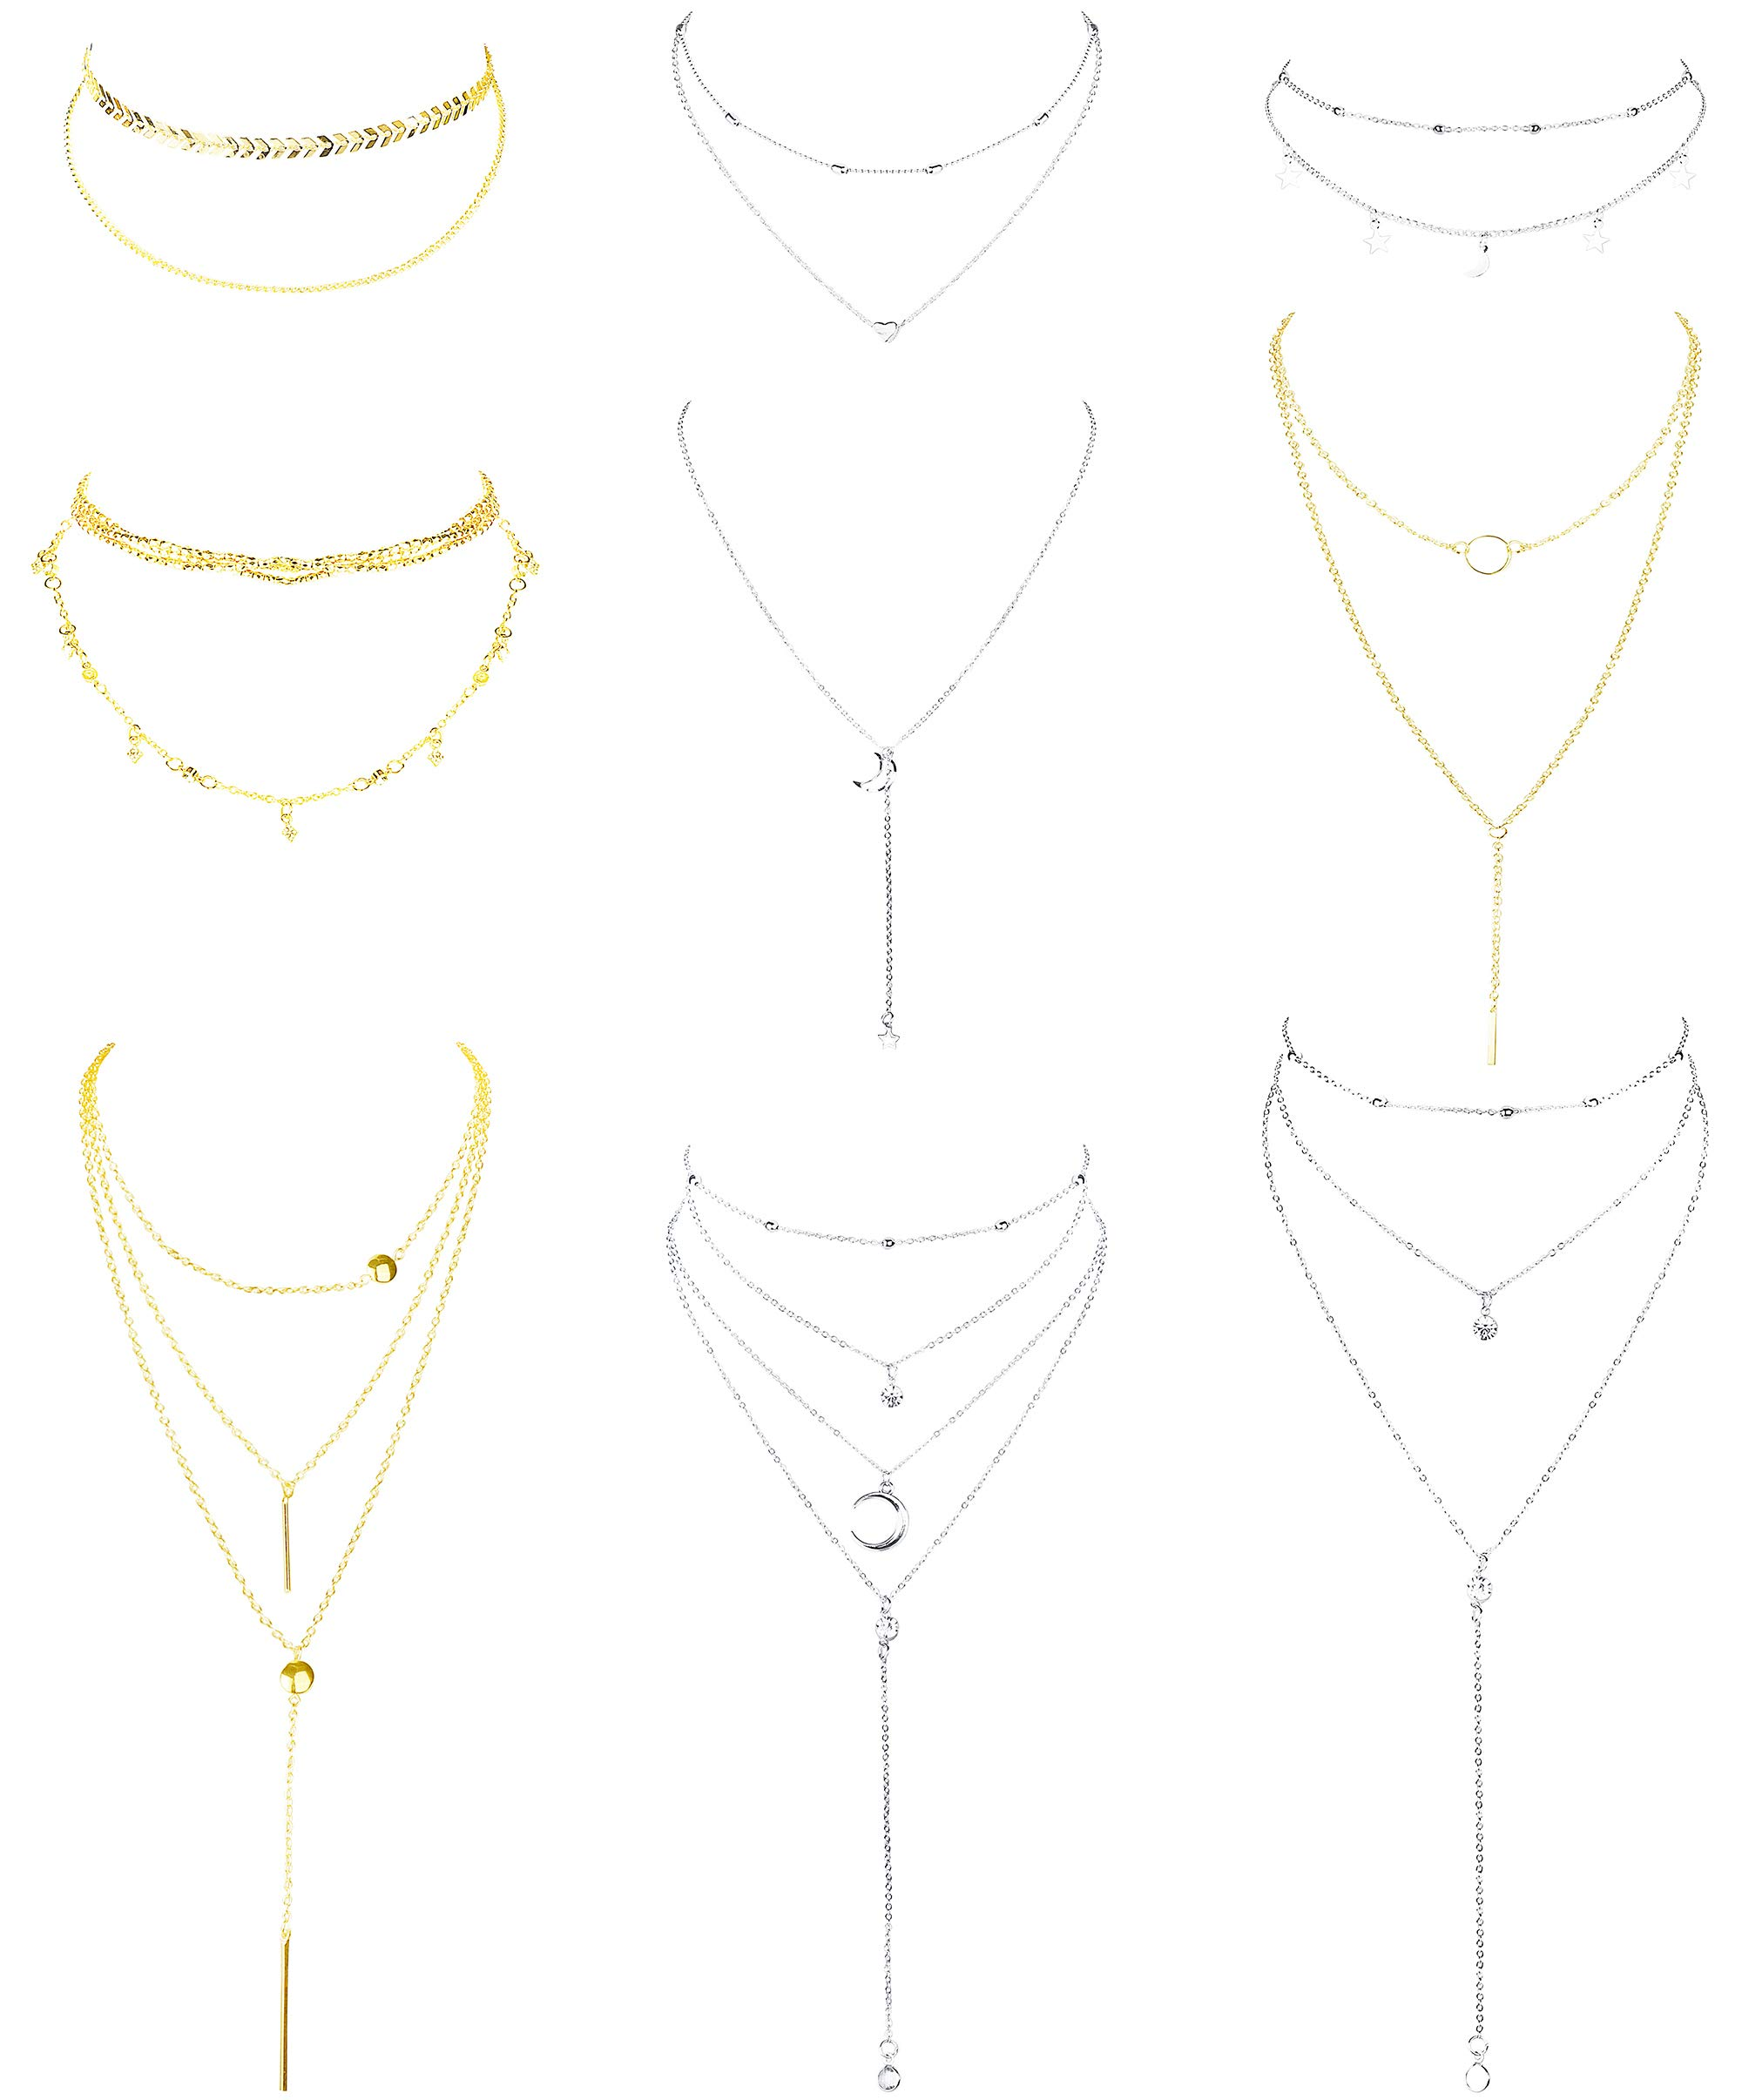 LOYALLOOK 8pcs Boho Layered Necklace Pendant Gold & Silver Tone Necklace Y Necklace Bar Pendent Necklace Set for Women Girls Mother Jewelry Set